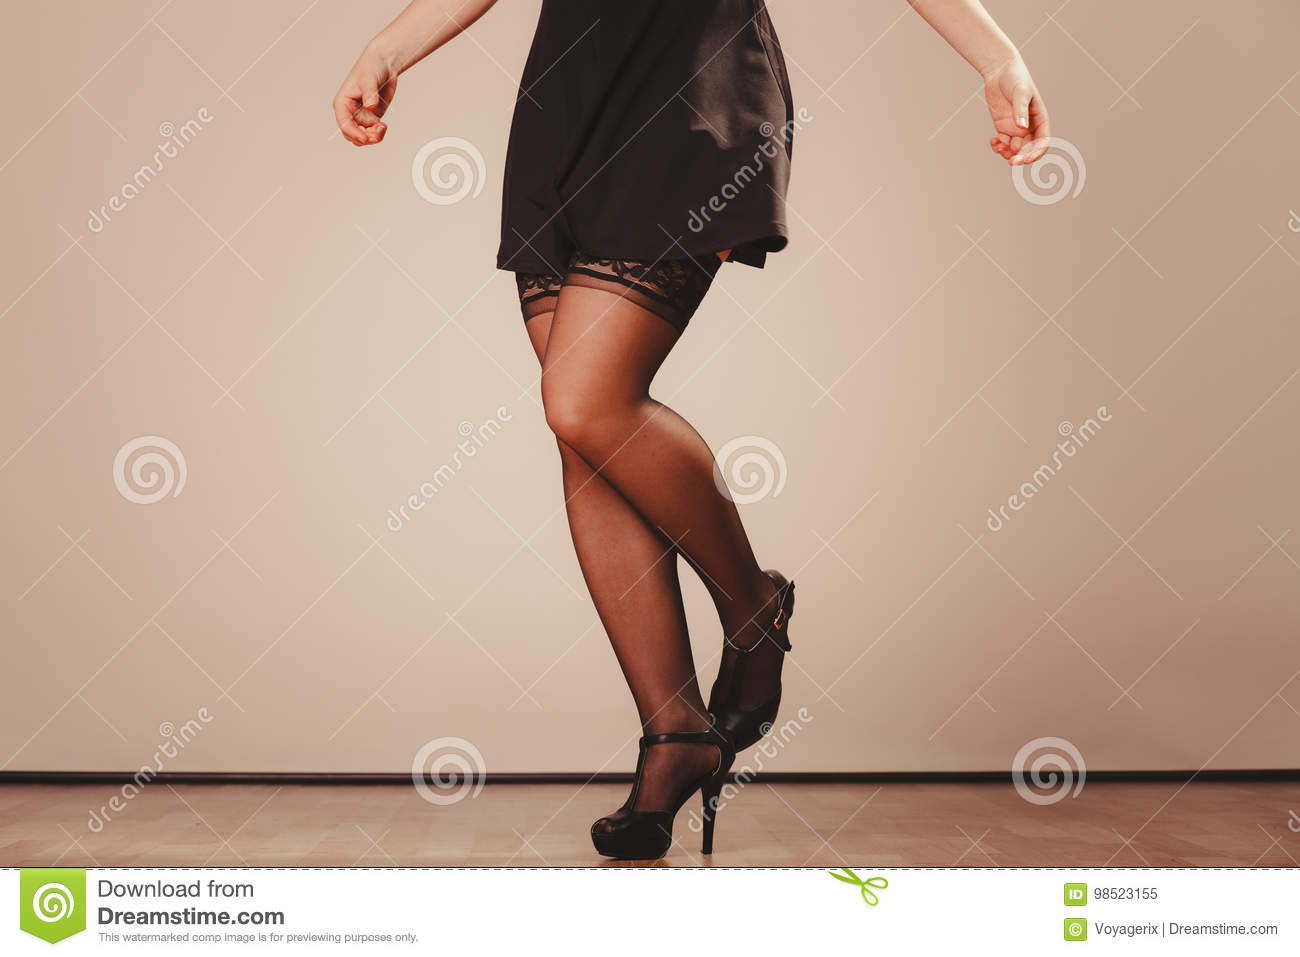 46e5f5211 Beauty and sexuality of women. part body woman model wearing black dress  skirt and pants stockings. Female legs in high heels.